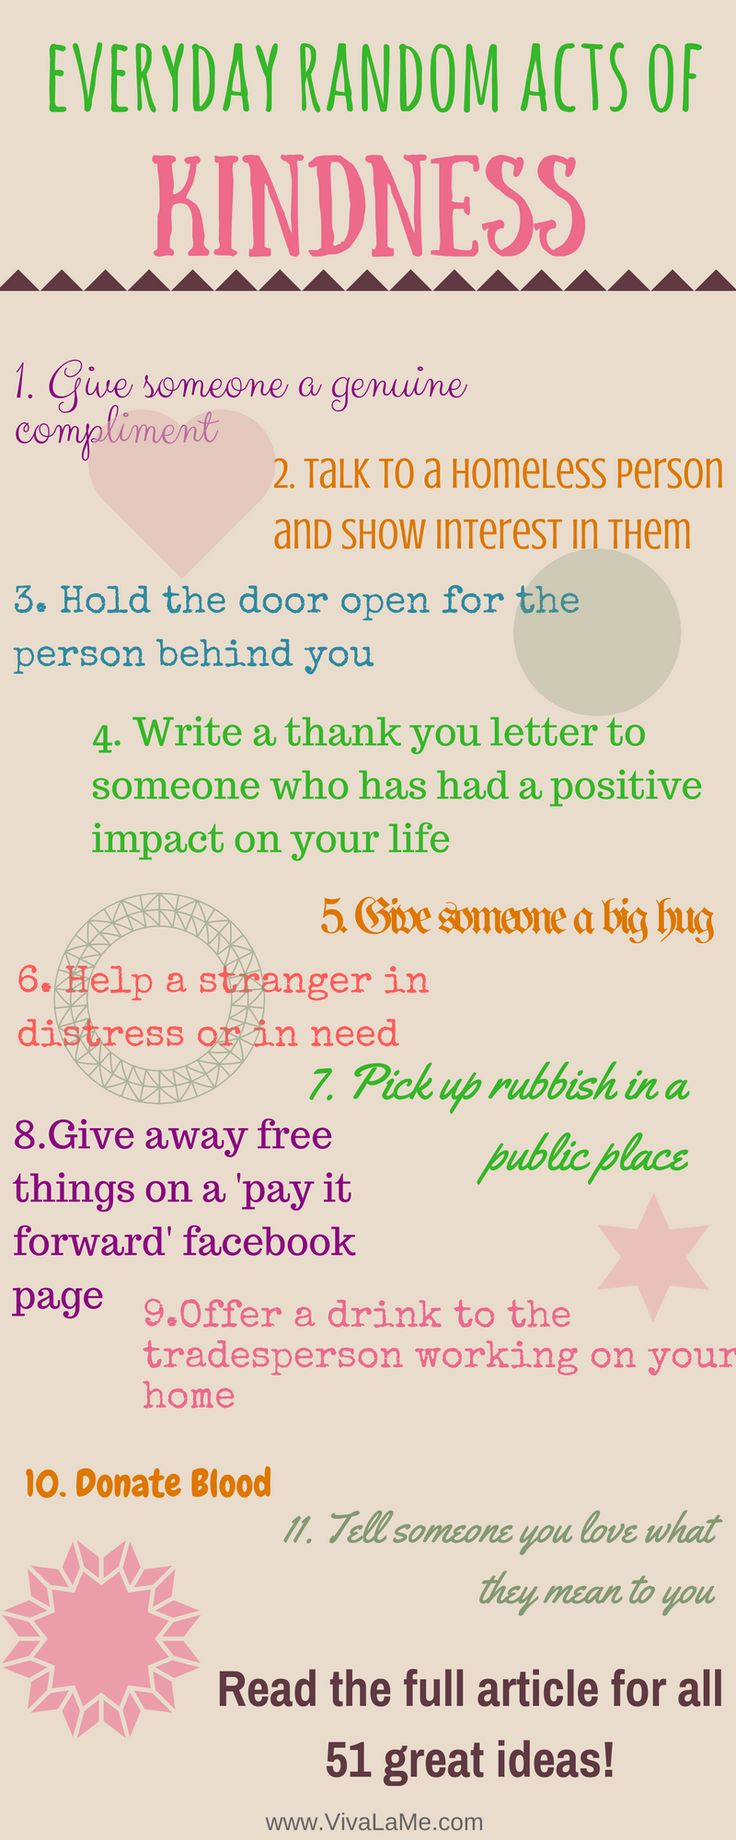 Never underestimate the power of a random act of kindness. Have a look at these 51 ideas and see how many acts of kindness you can incorporate into your day.